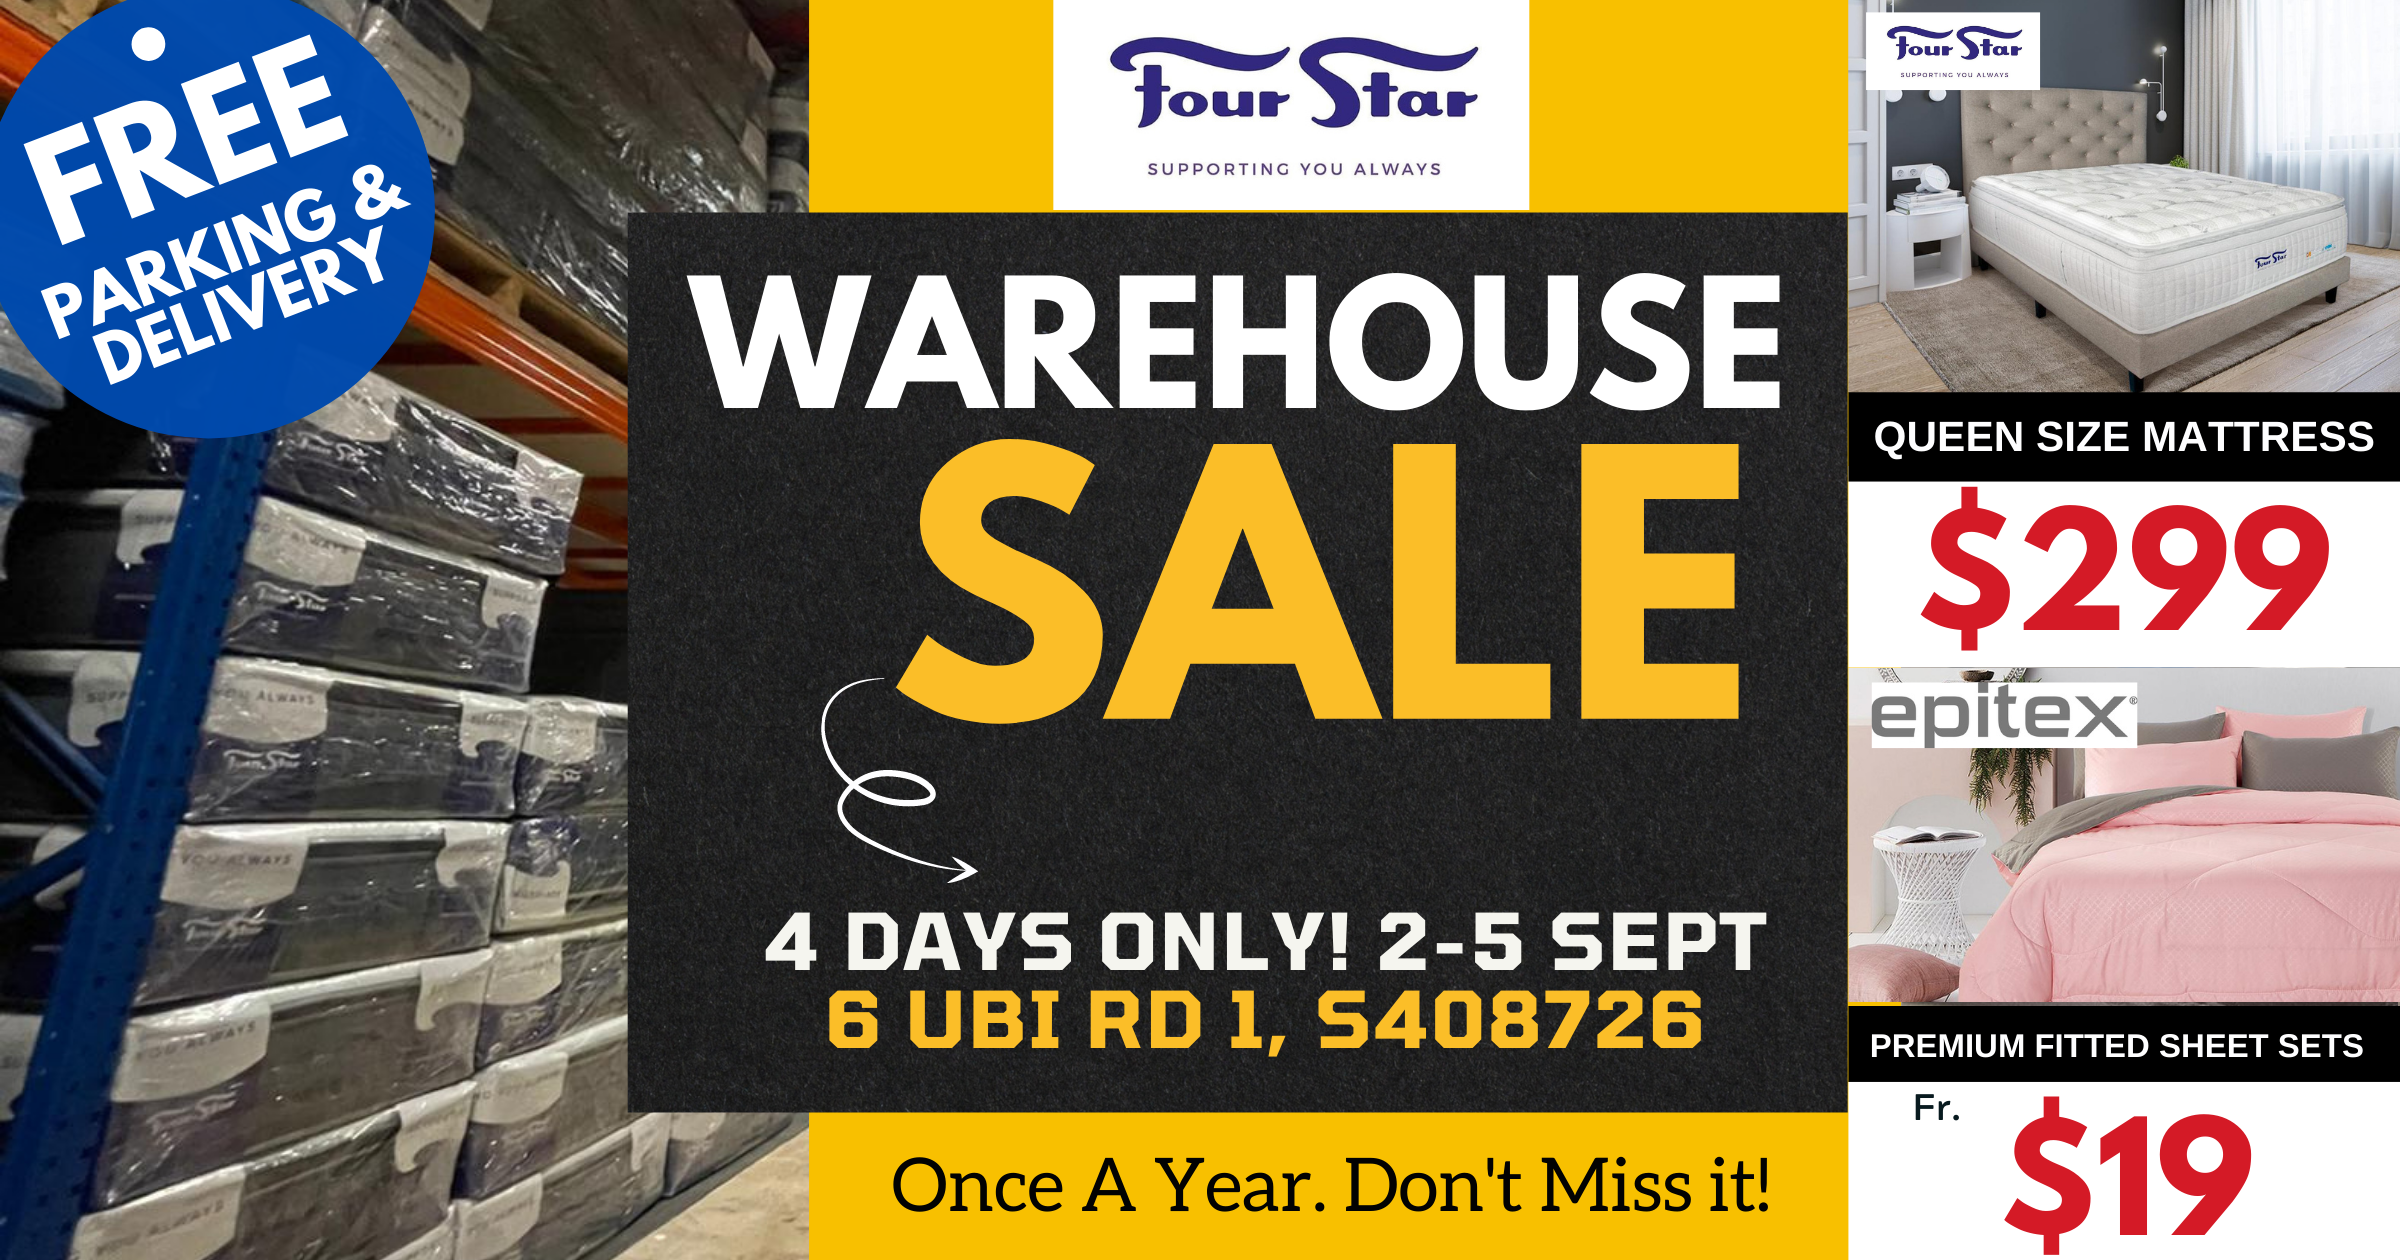 Ubi warehouse sale has over 1,000 mattress and storage beds to clear, price starts from S$199